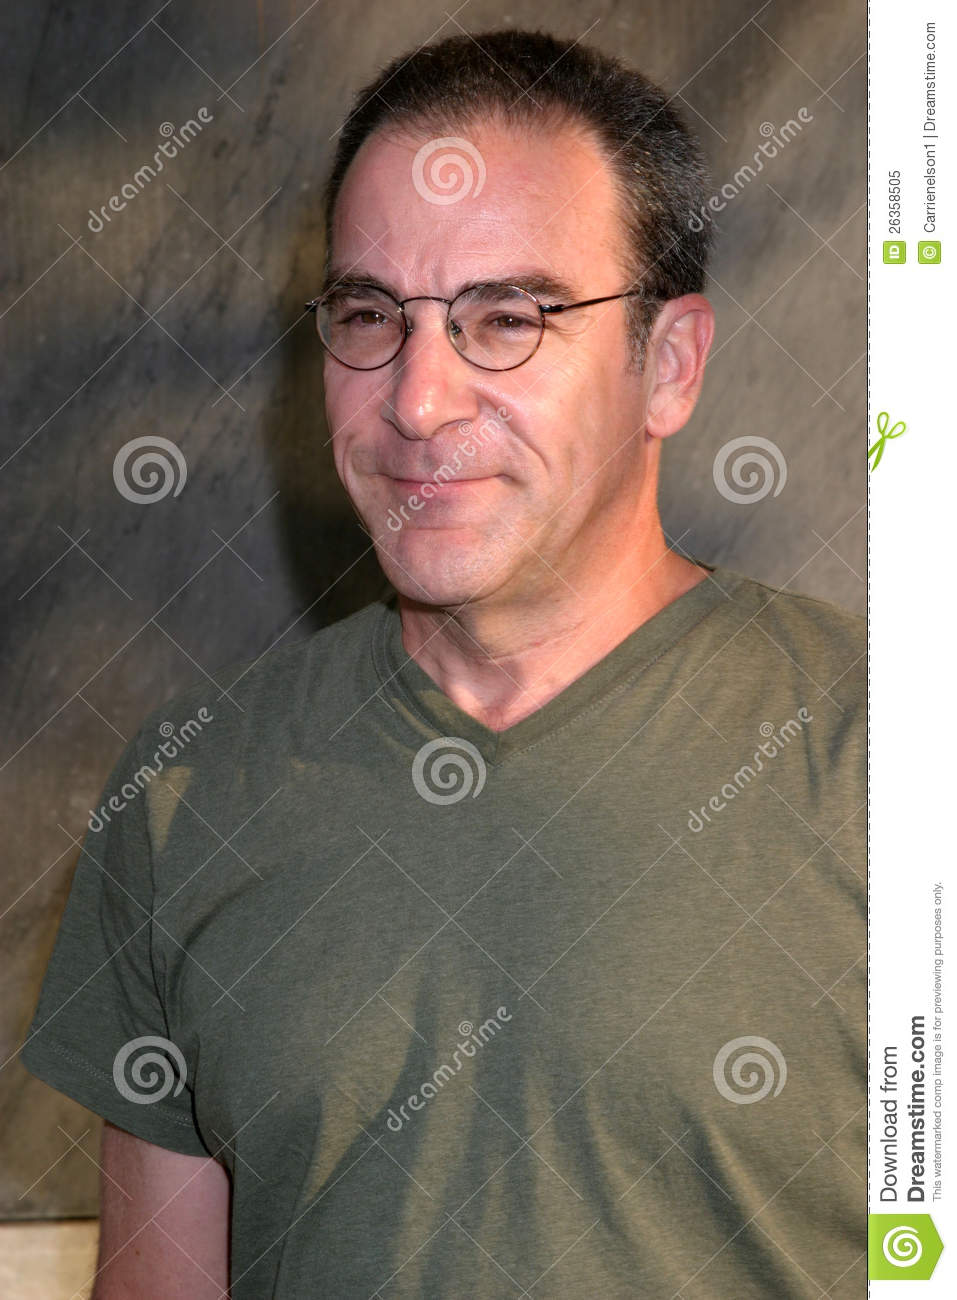 mandy patinkin criminal